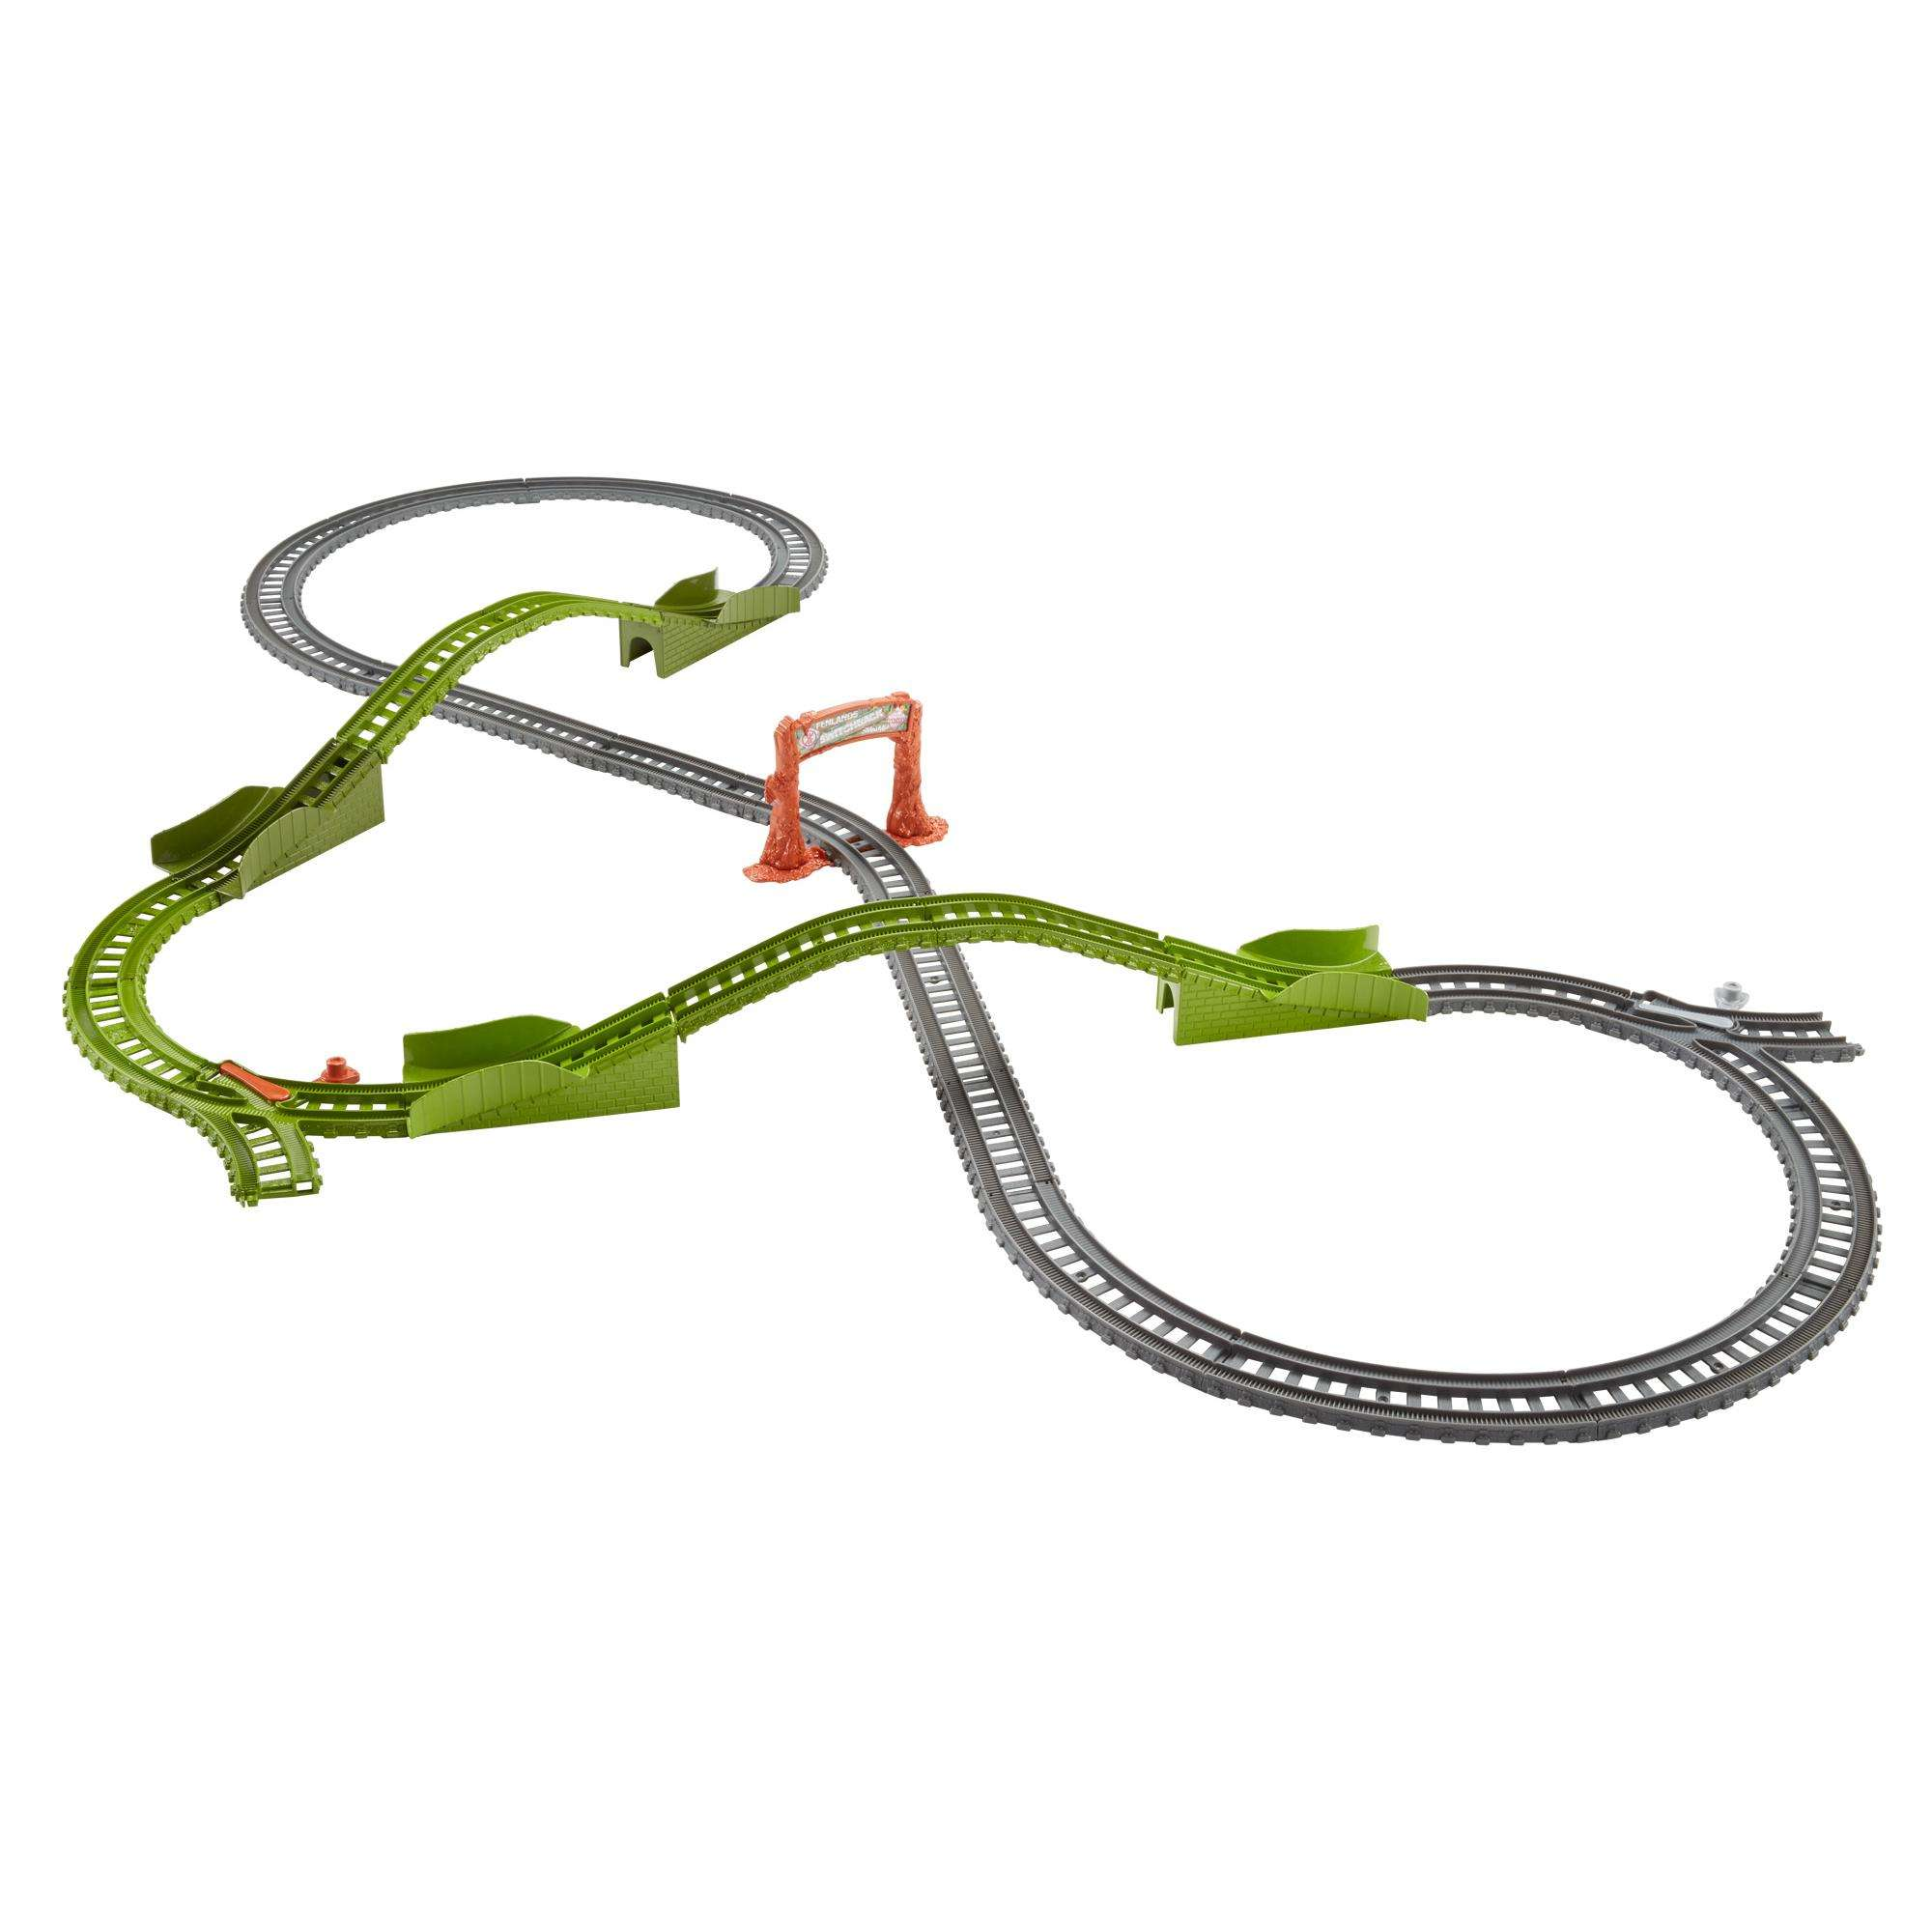 Thomas & Friends TrackMaster Switchback Swamp